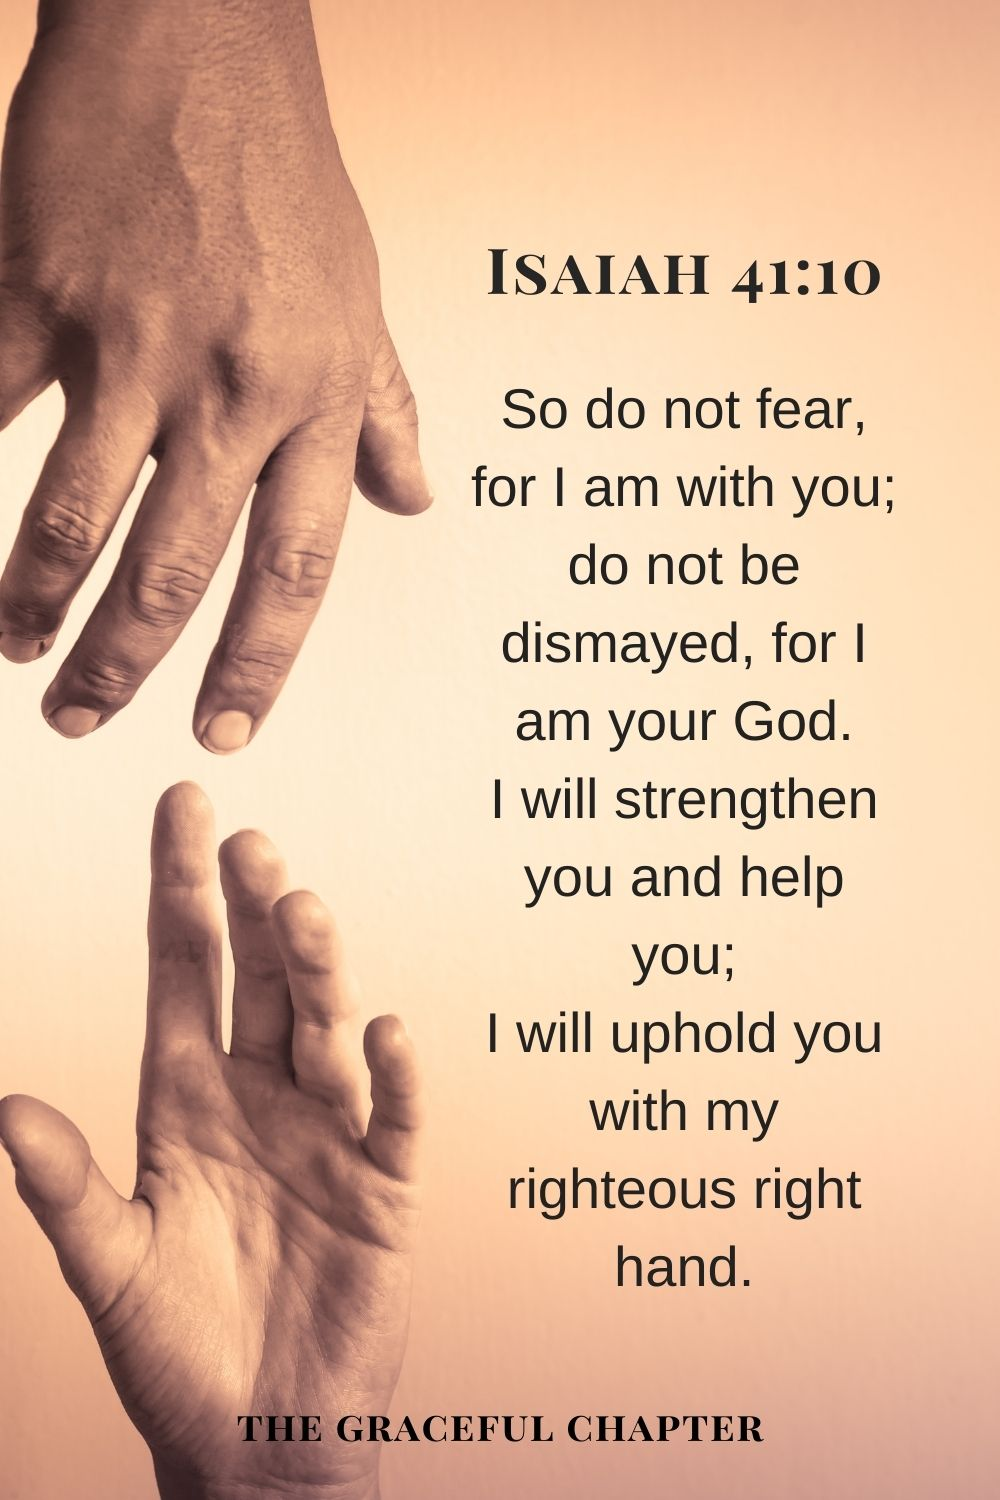 So do not fear, for I am with you; do not be dismayed, for I am your God. I will strengthen you and help you; I will uphold you with my righteous right hand. Isaiah 41:10